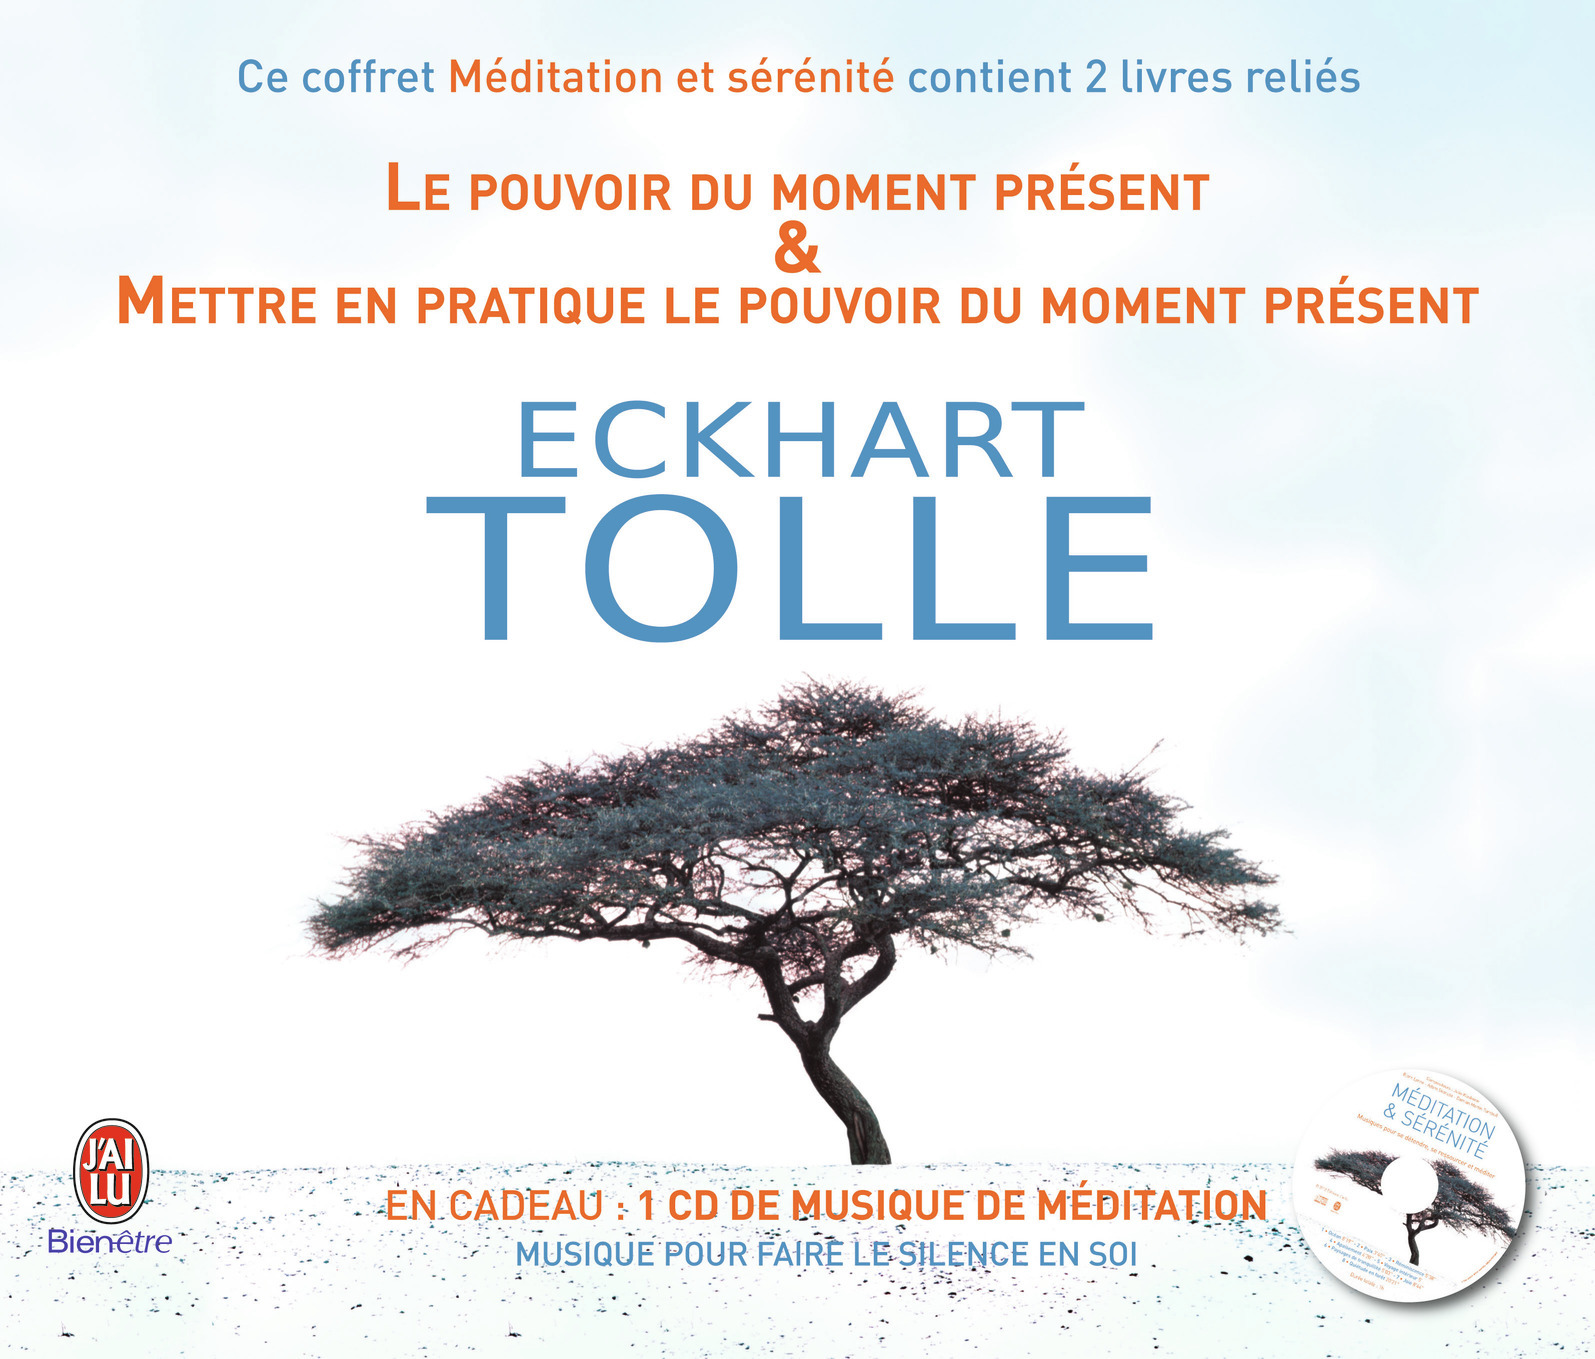 MEDITATION ET SERENITE